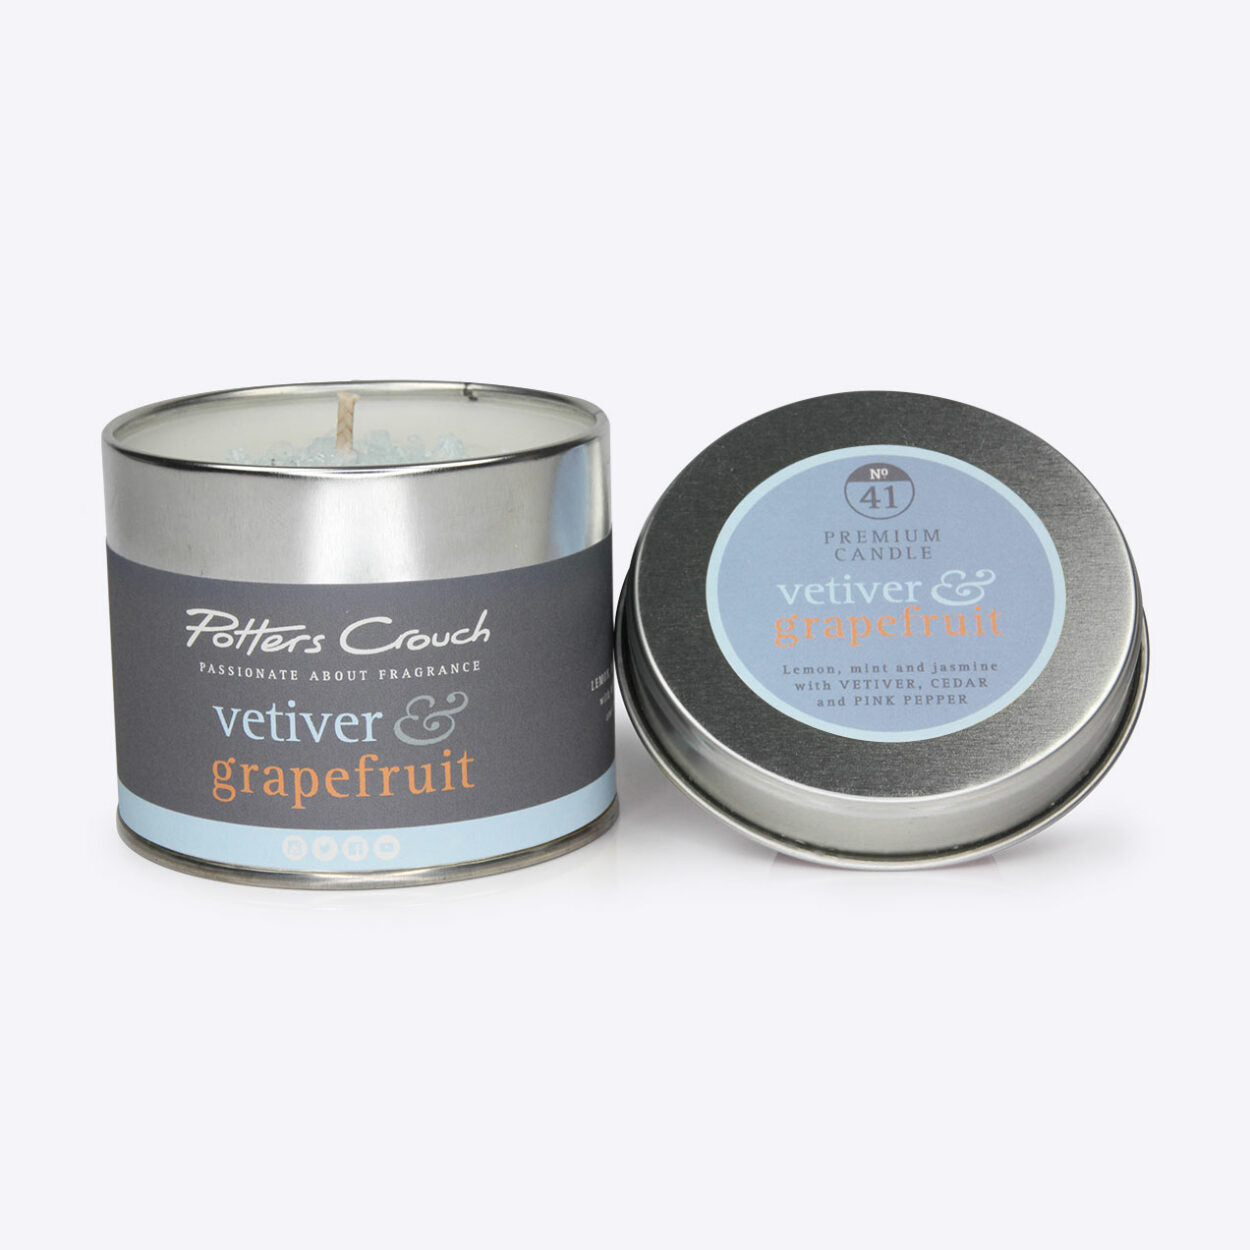 Vetiver and Grapefruit Scented Candle in a Tin